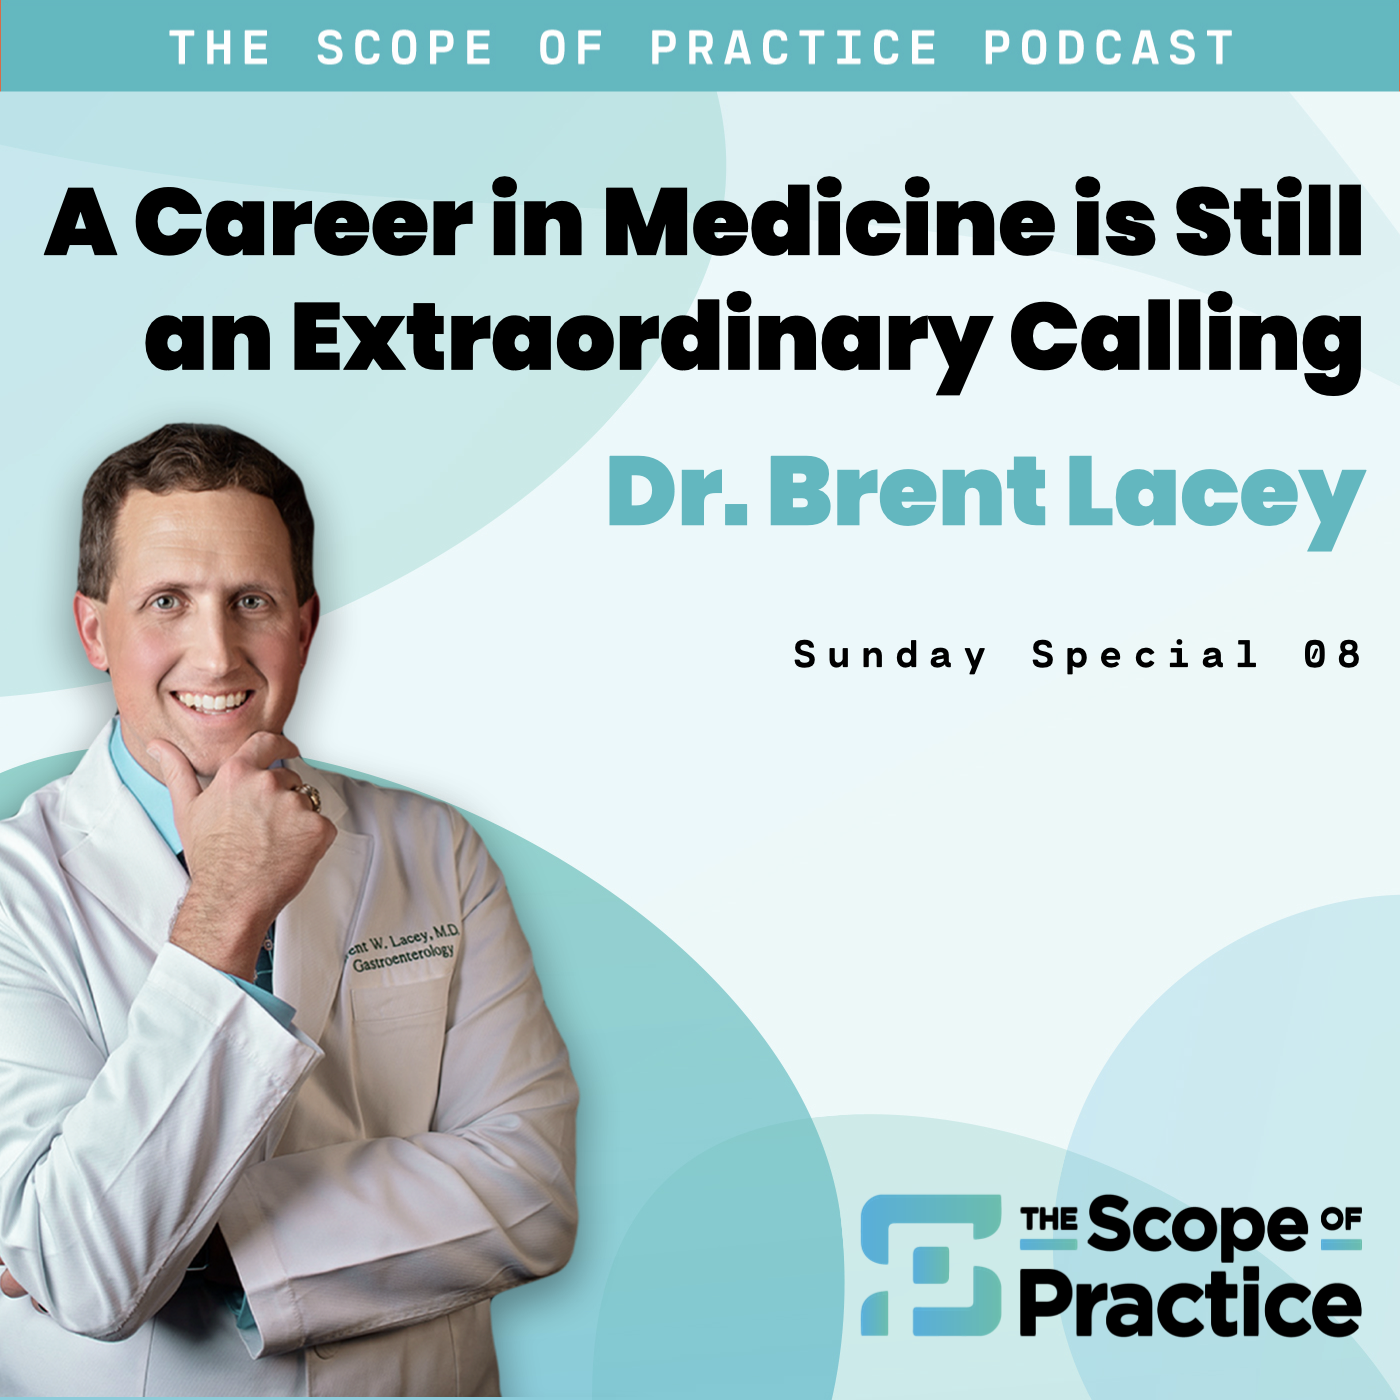 An extraordinary calling with Dr. Brent Lacey